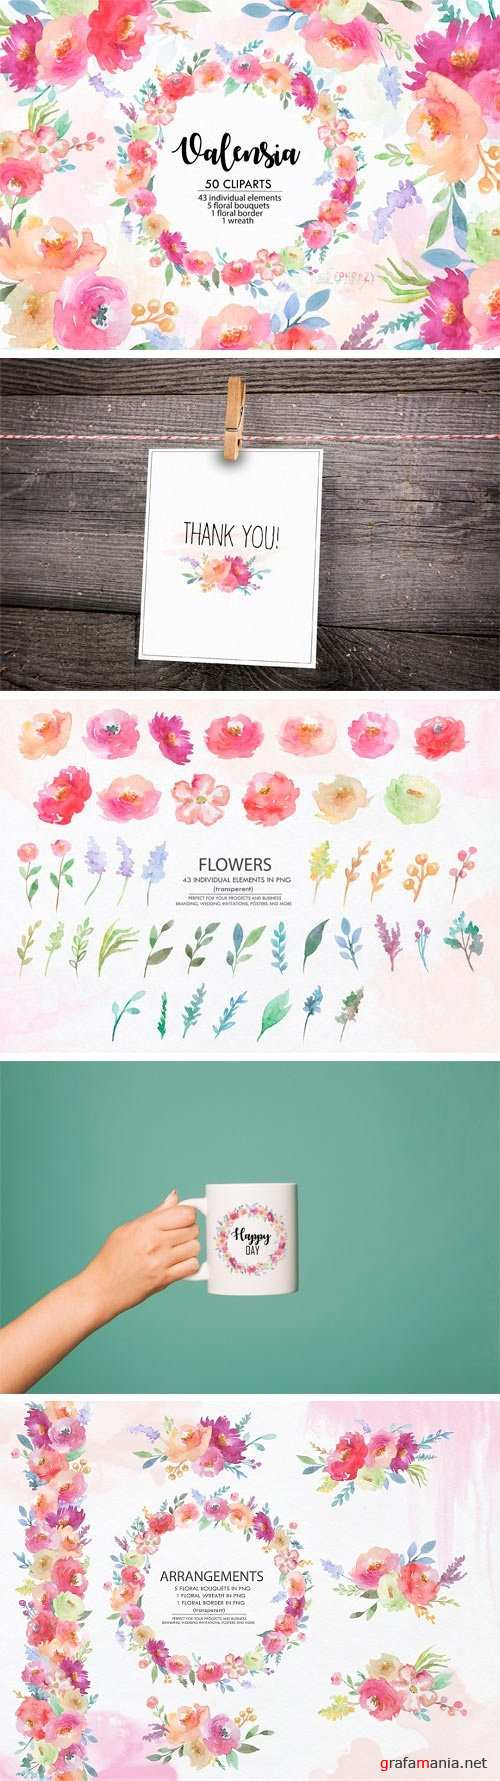 Valensia. Floral Clipart. Watercolor - 2370436